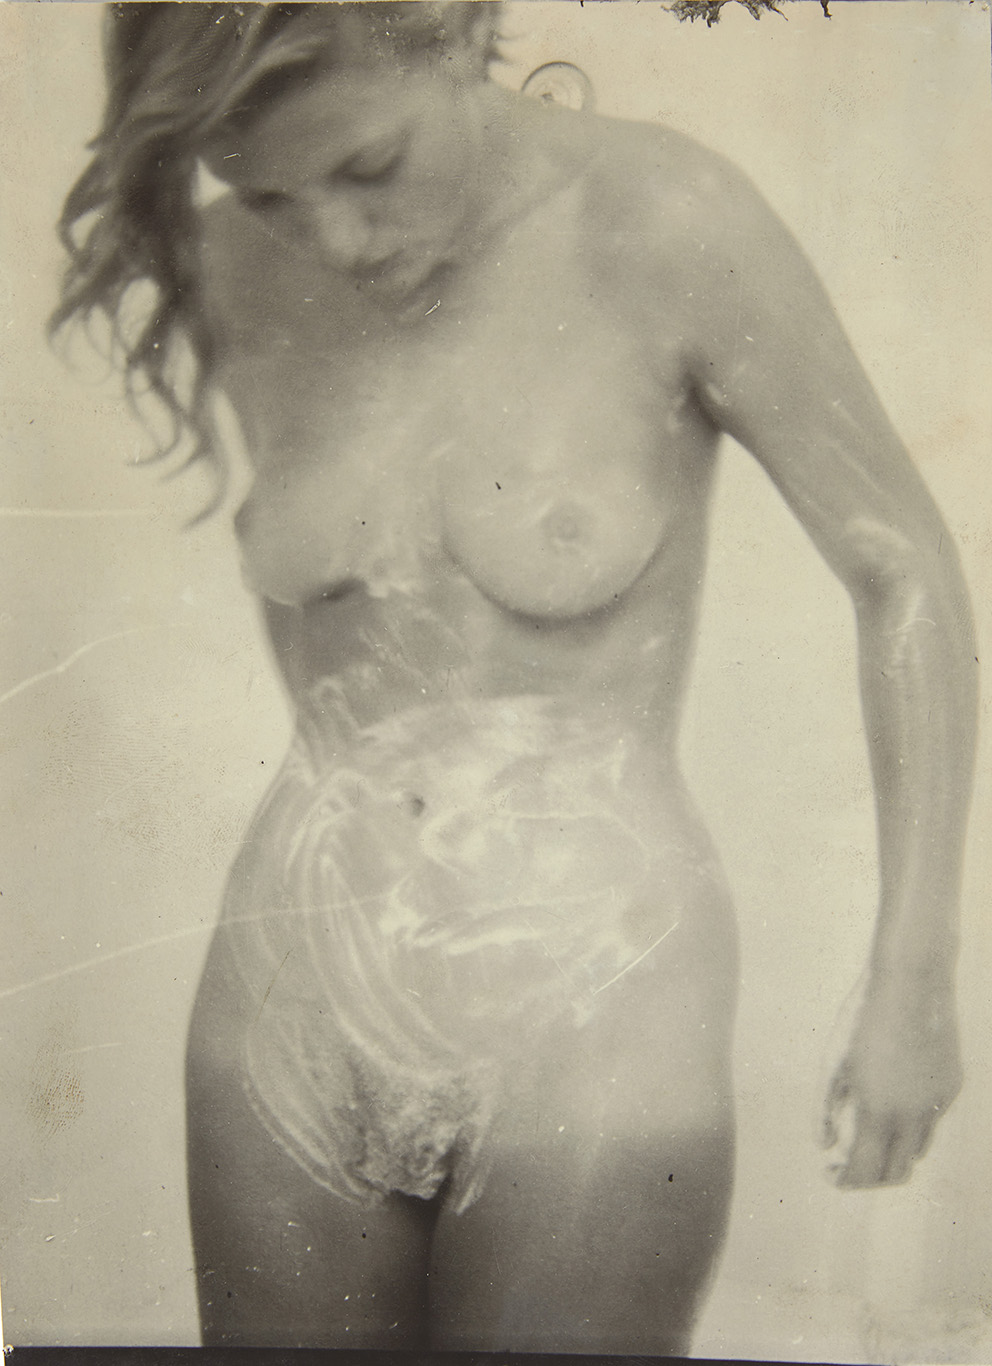 Anonymous photographer, Lee Miller nude in the shower, print on Agfa Brovira paper, 23.6 x 16.5 cm.Estimate: €1,000/2,000